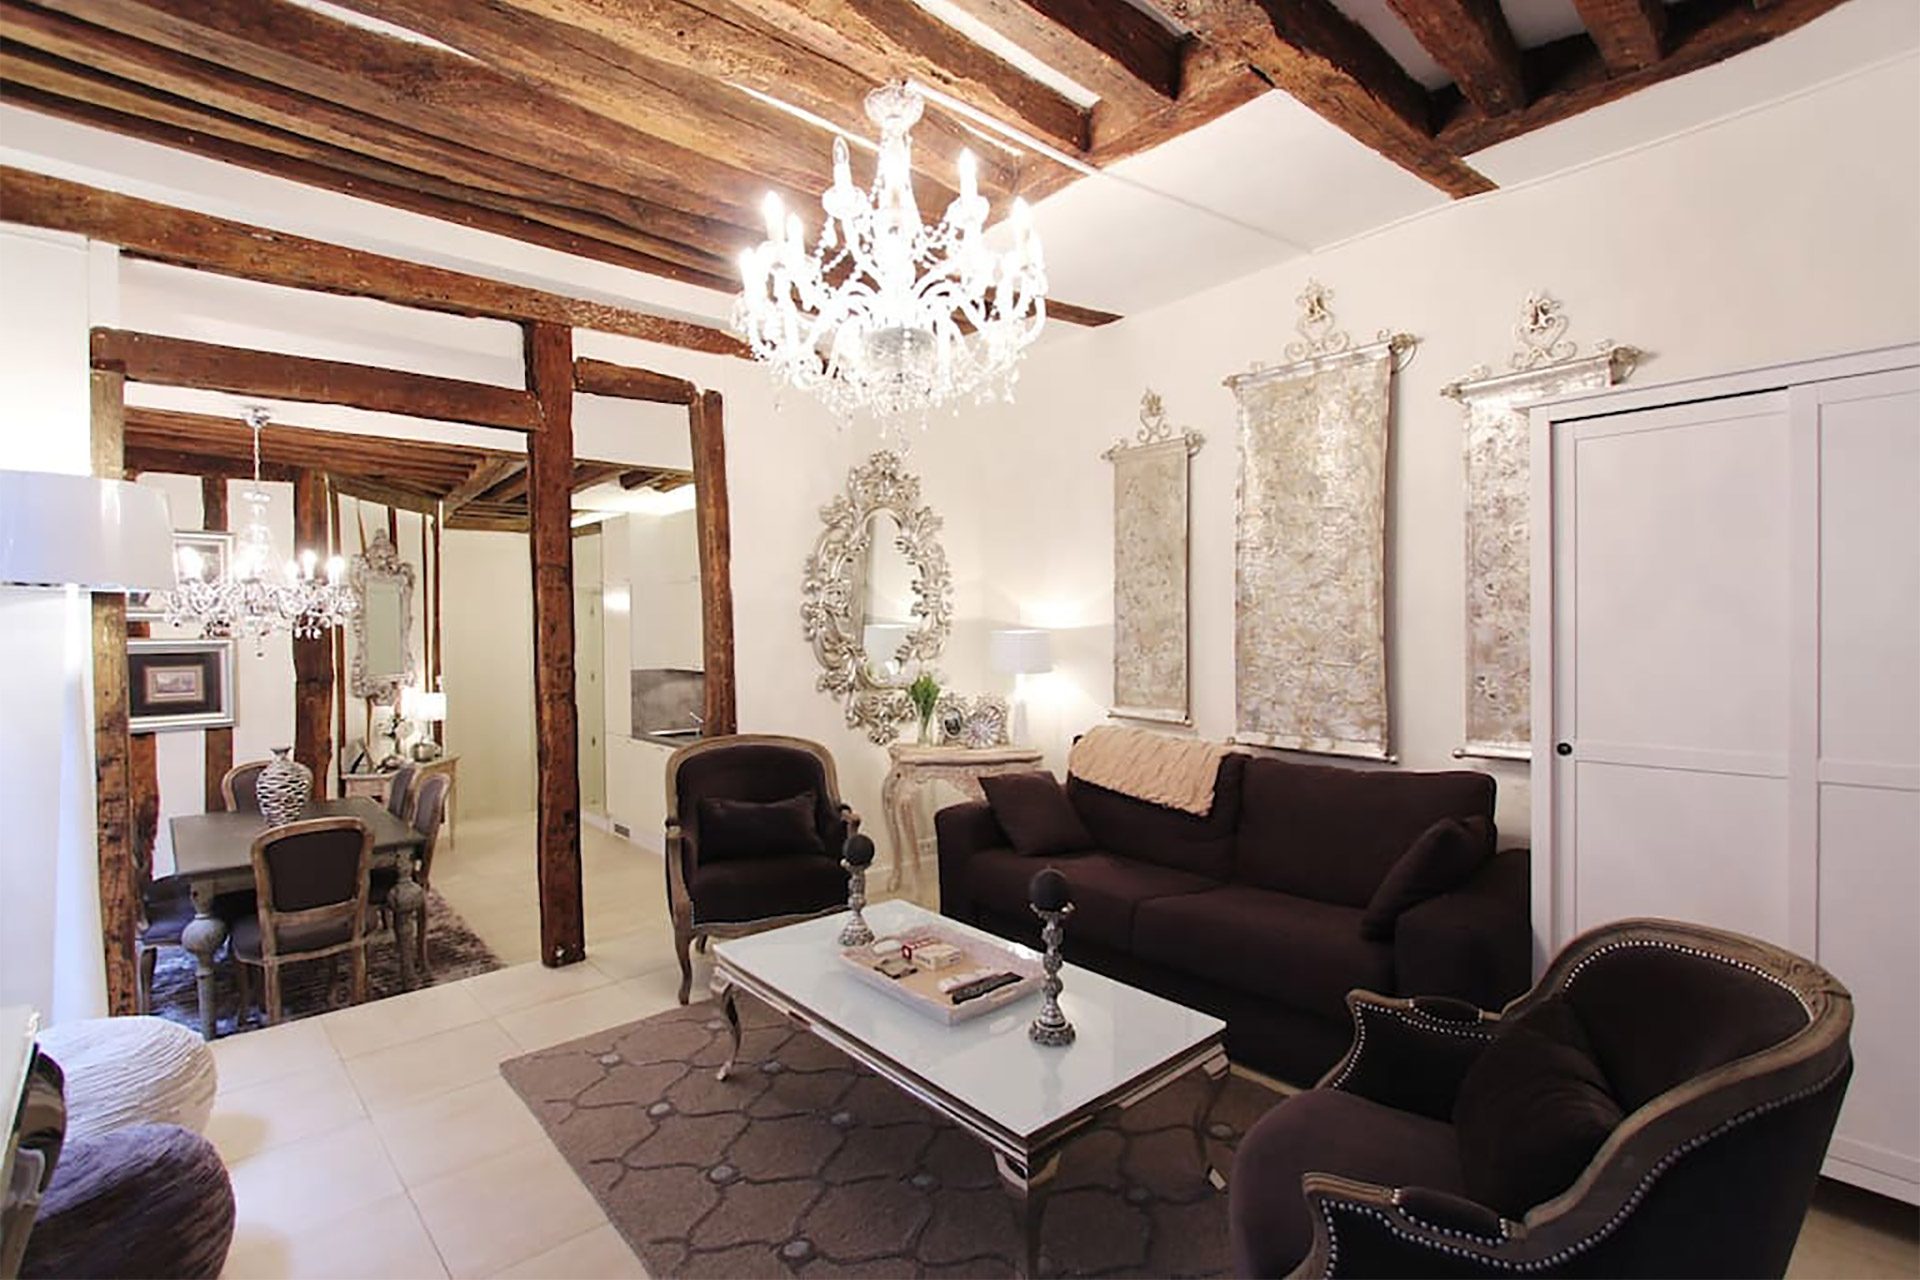 Elegant 1 bedroom Long Term vacation rental in the chic Marais area